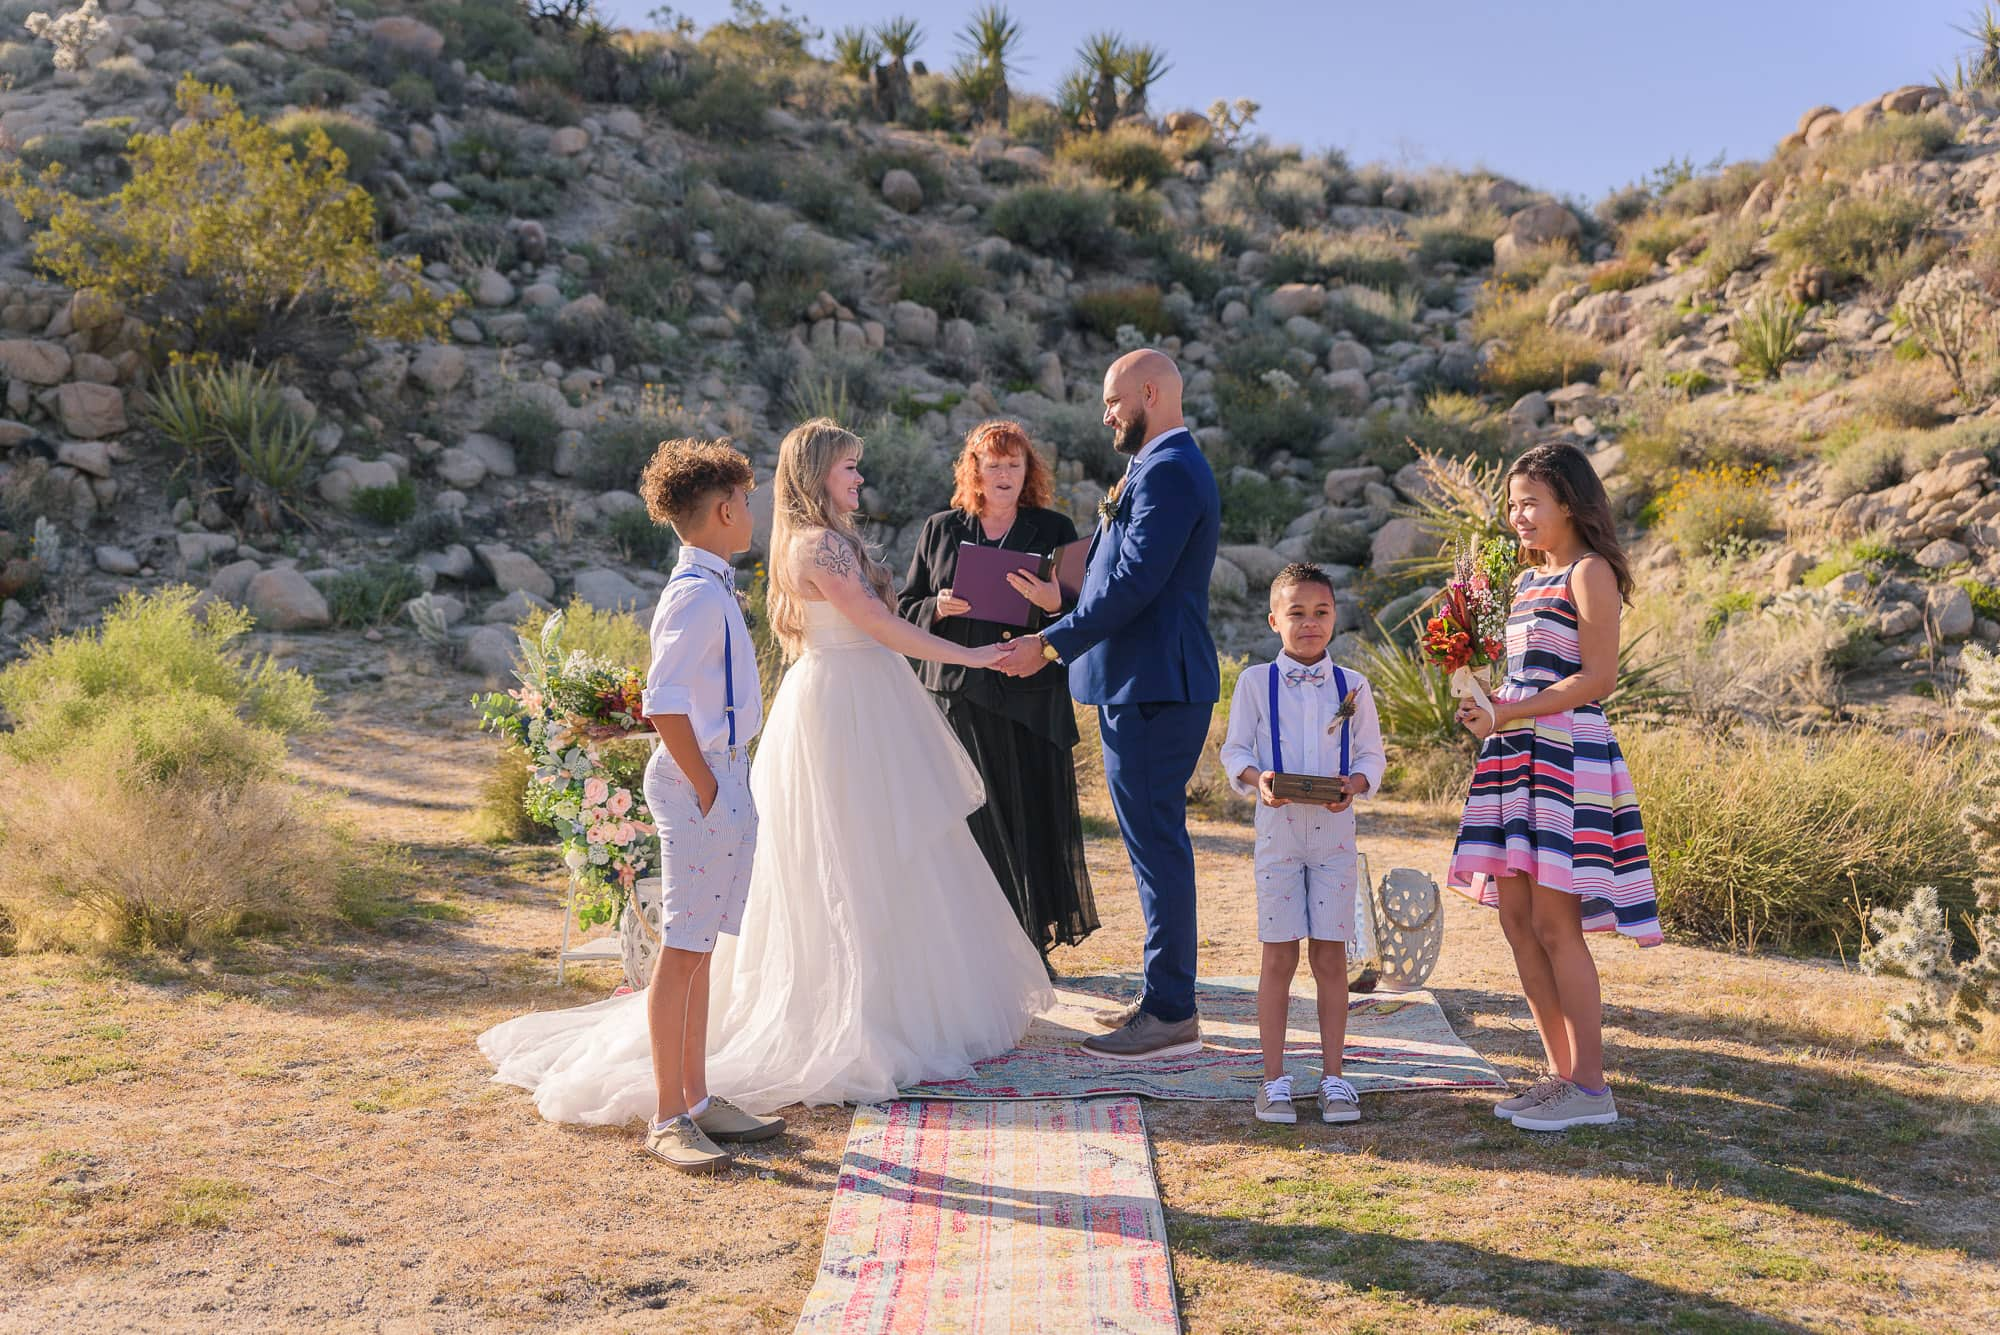 008_Alan_and_Heidi_Joshua_Tree_Spring_Elopement